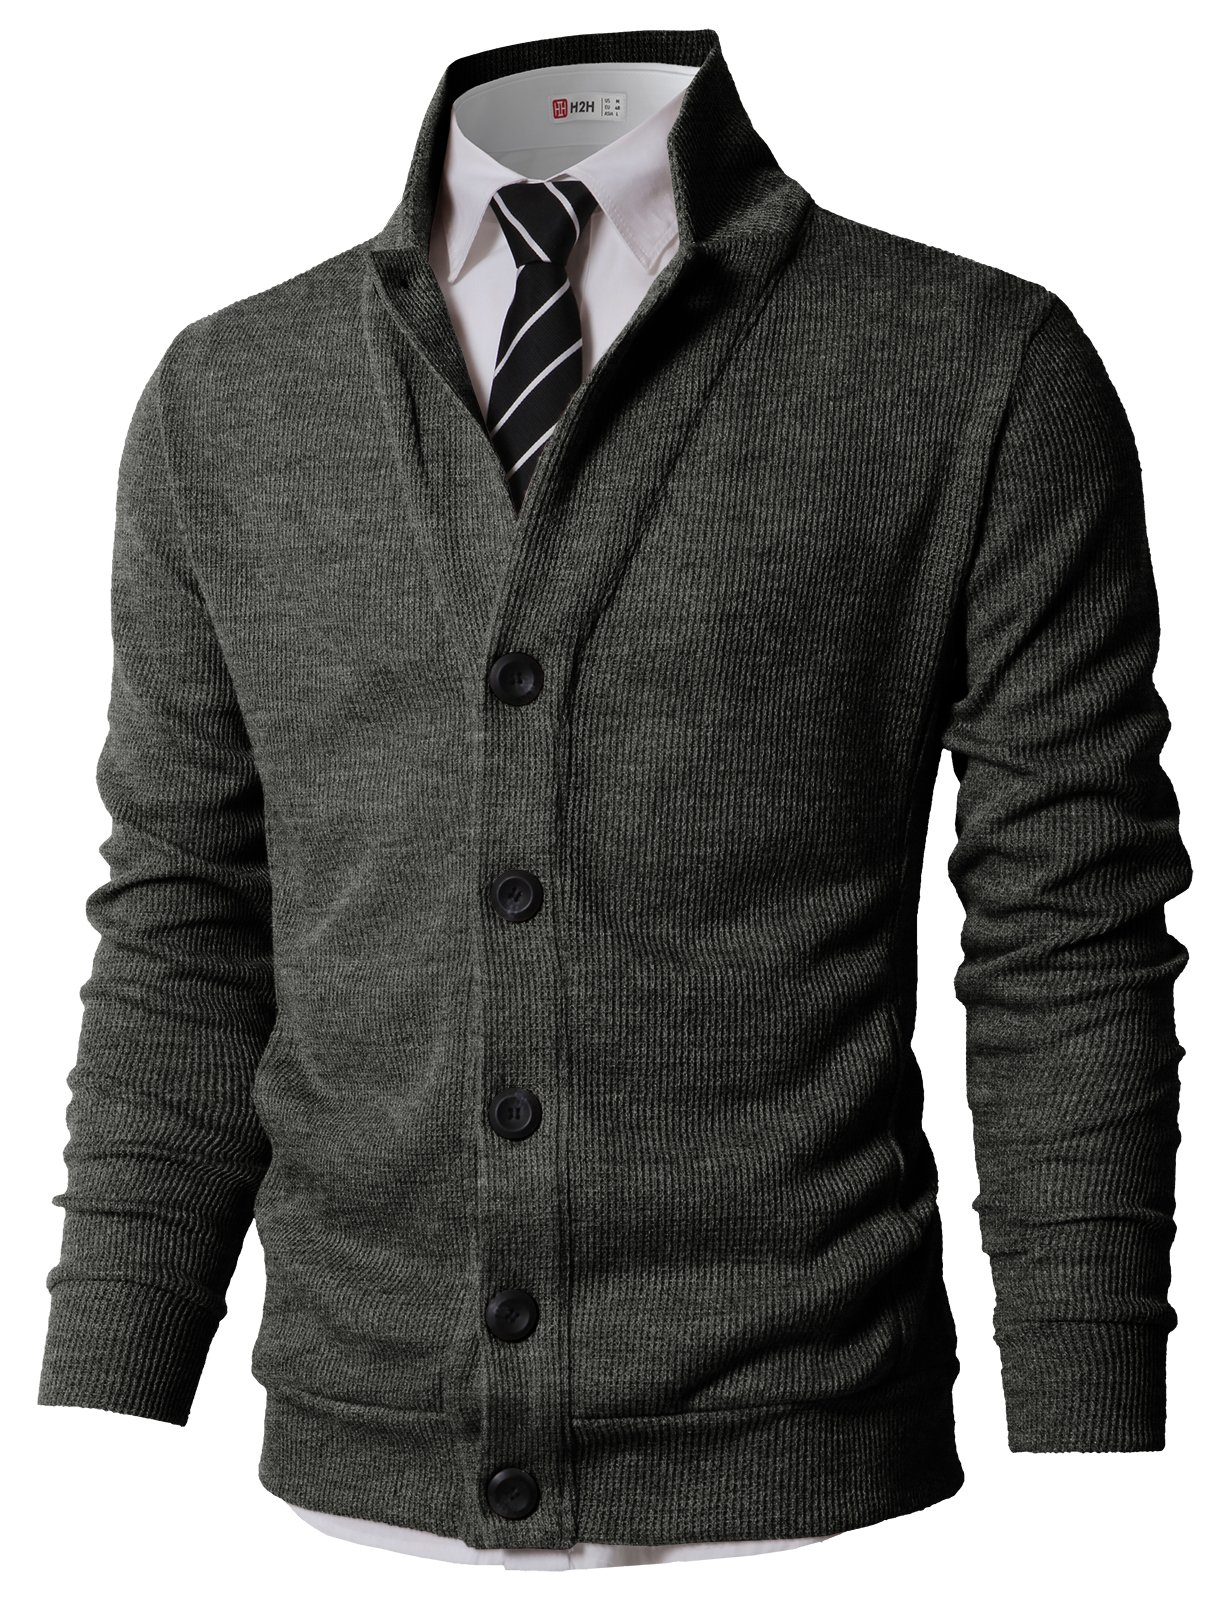 H2H Mens Slim Fit Basic Button up Shawl Collar Knit Cardigan Sweater Charcoal US M/Asia L (KMOCAL0182)